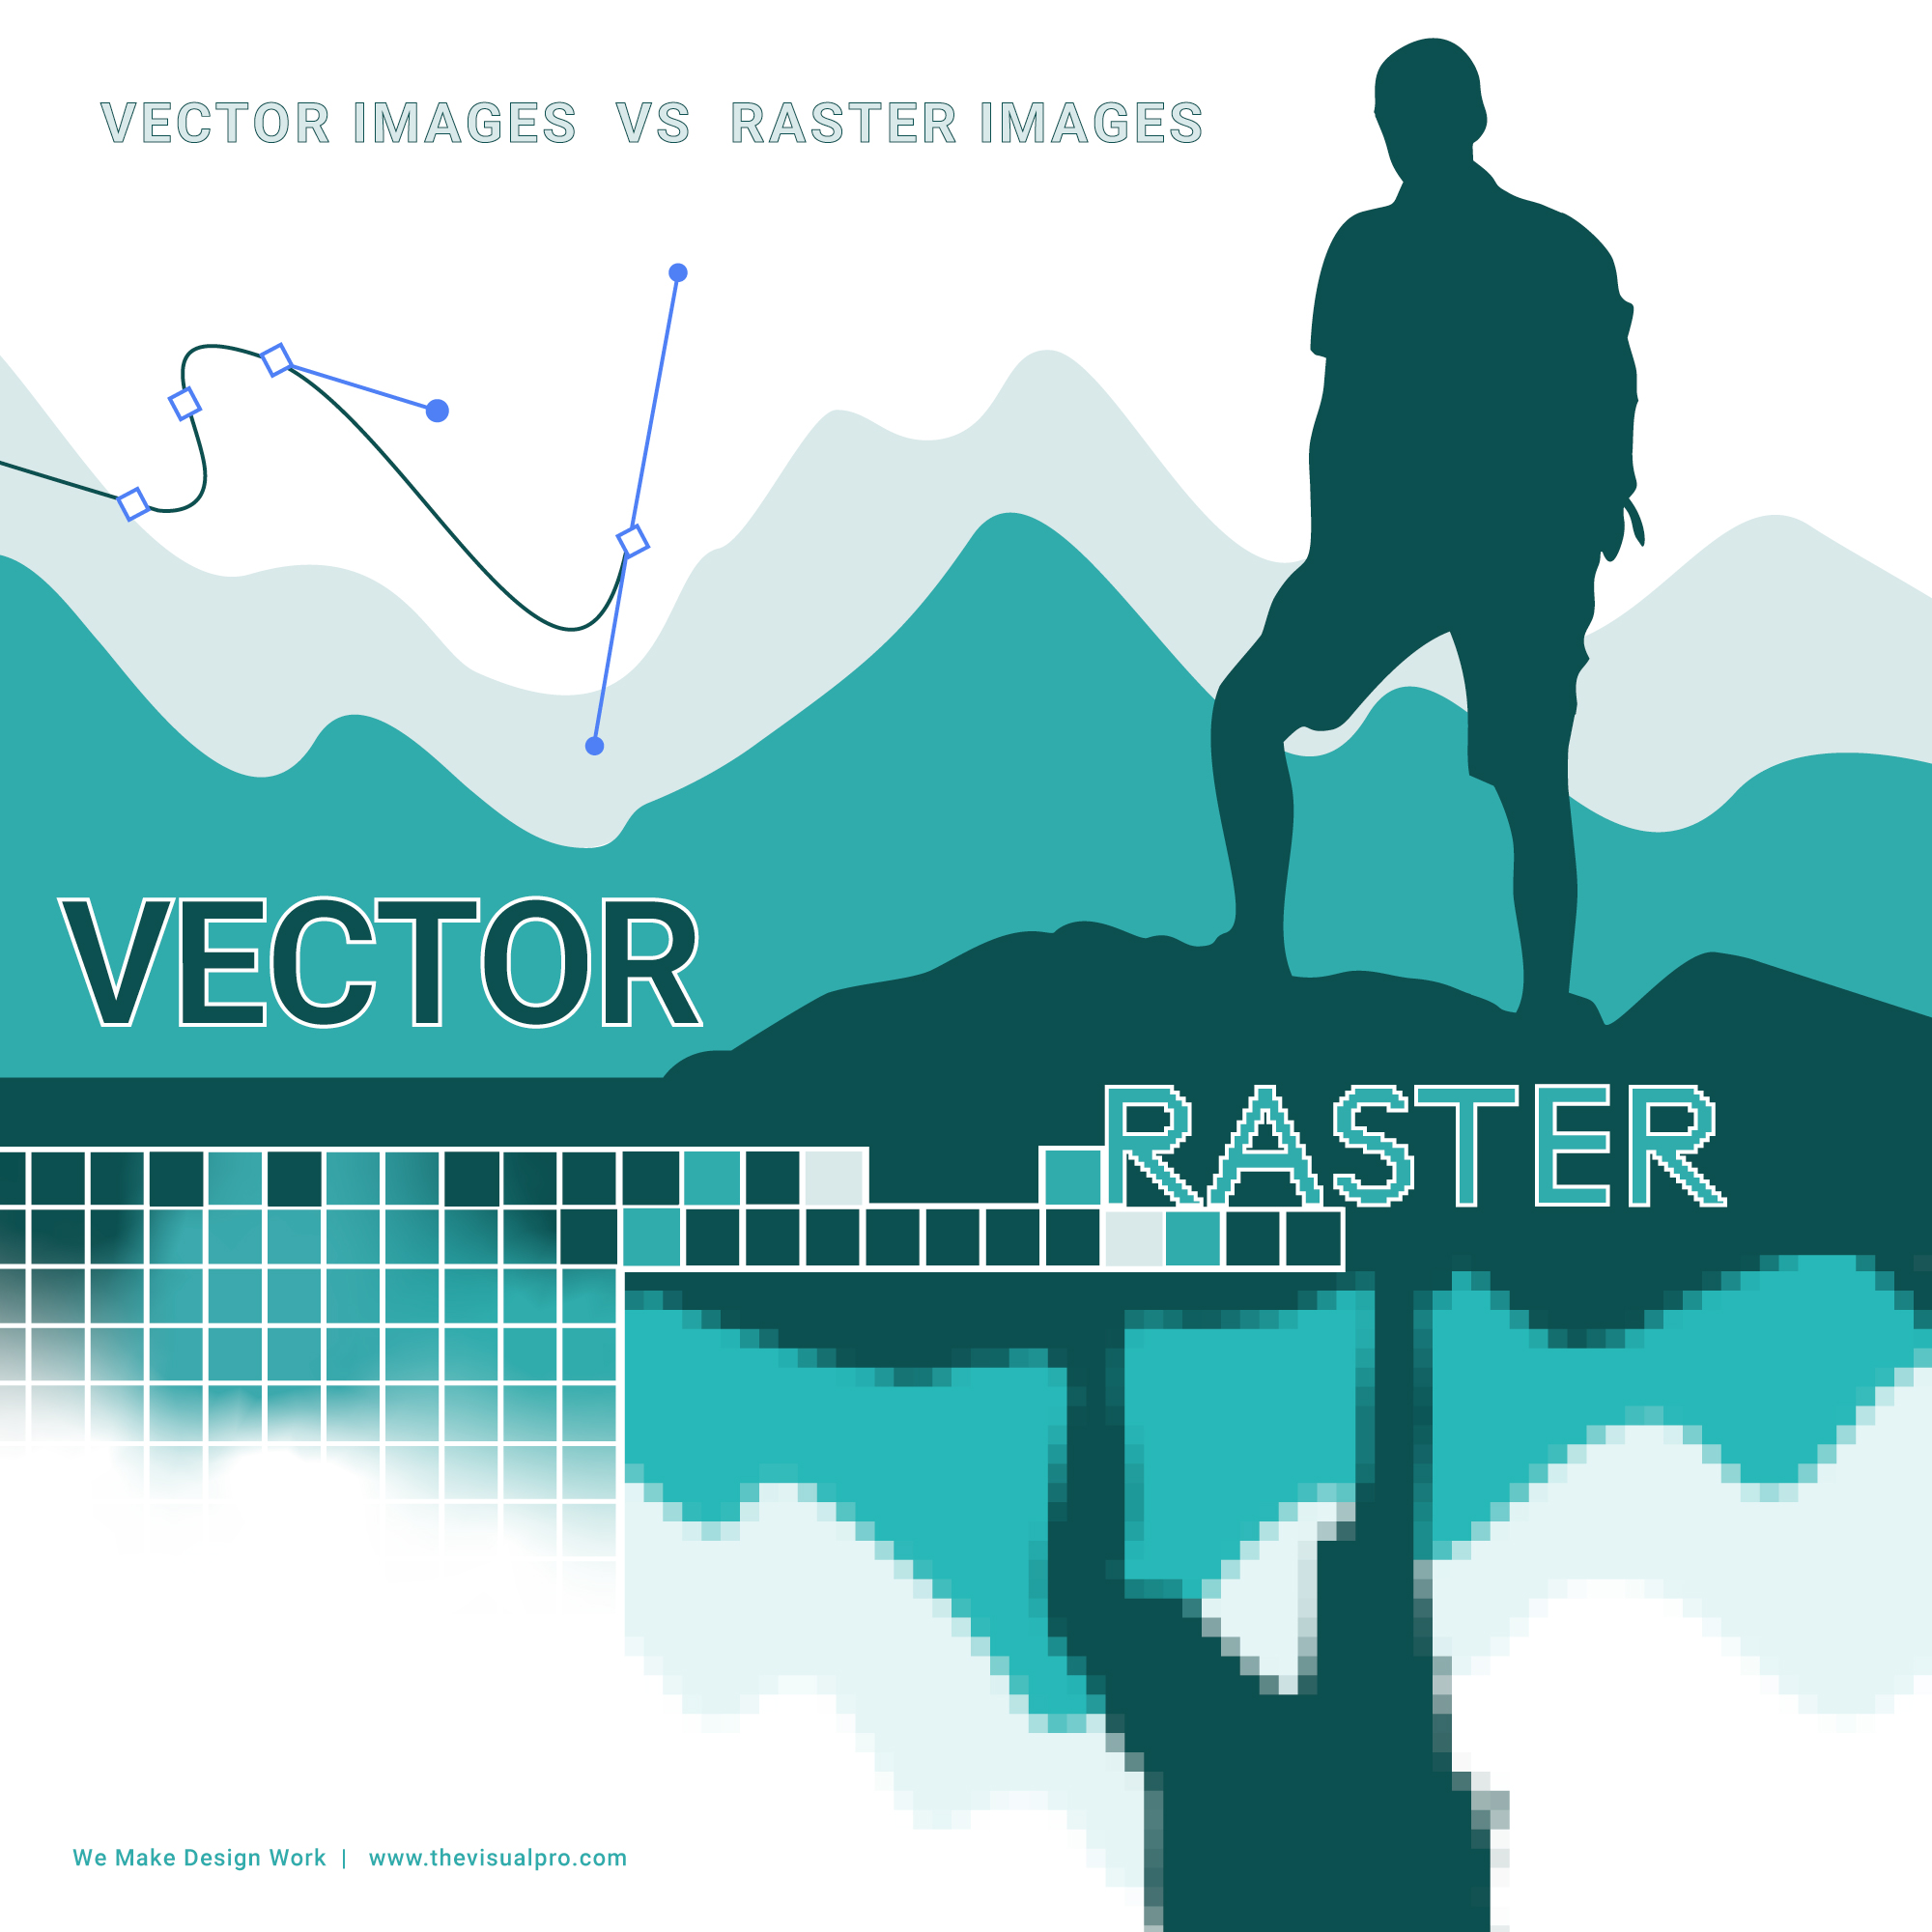 Vector vs. Raster: What's the Difference?